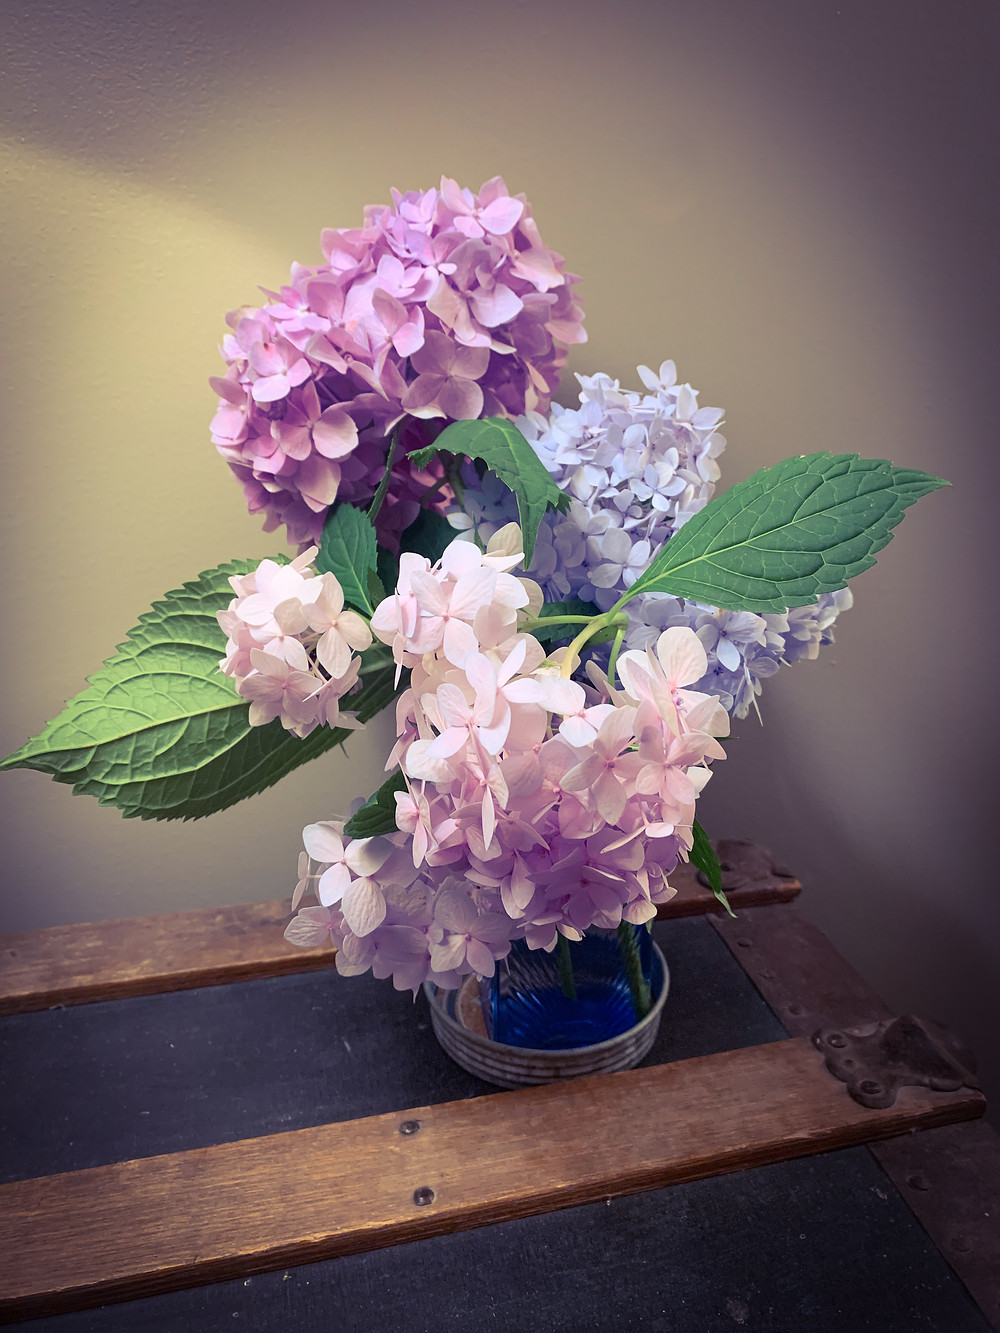 Hydrangeas are one of my favorite flowers so I have quite a few of them around our yard.